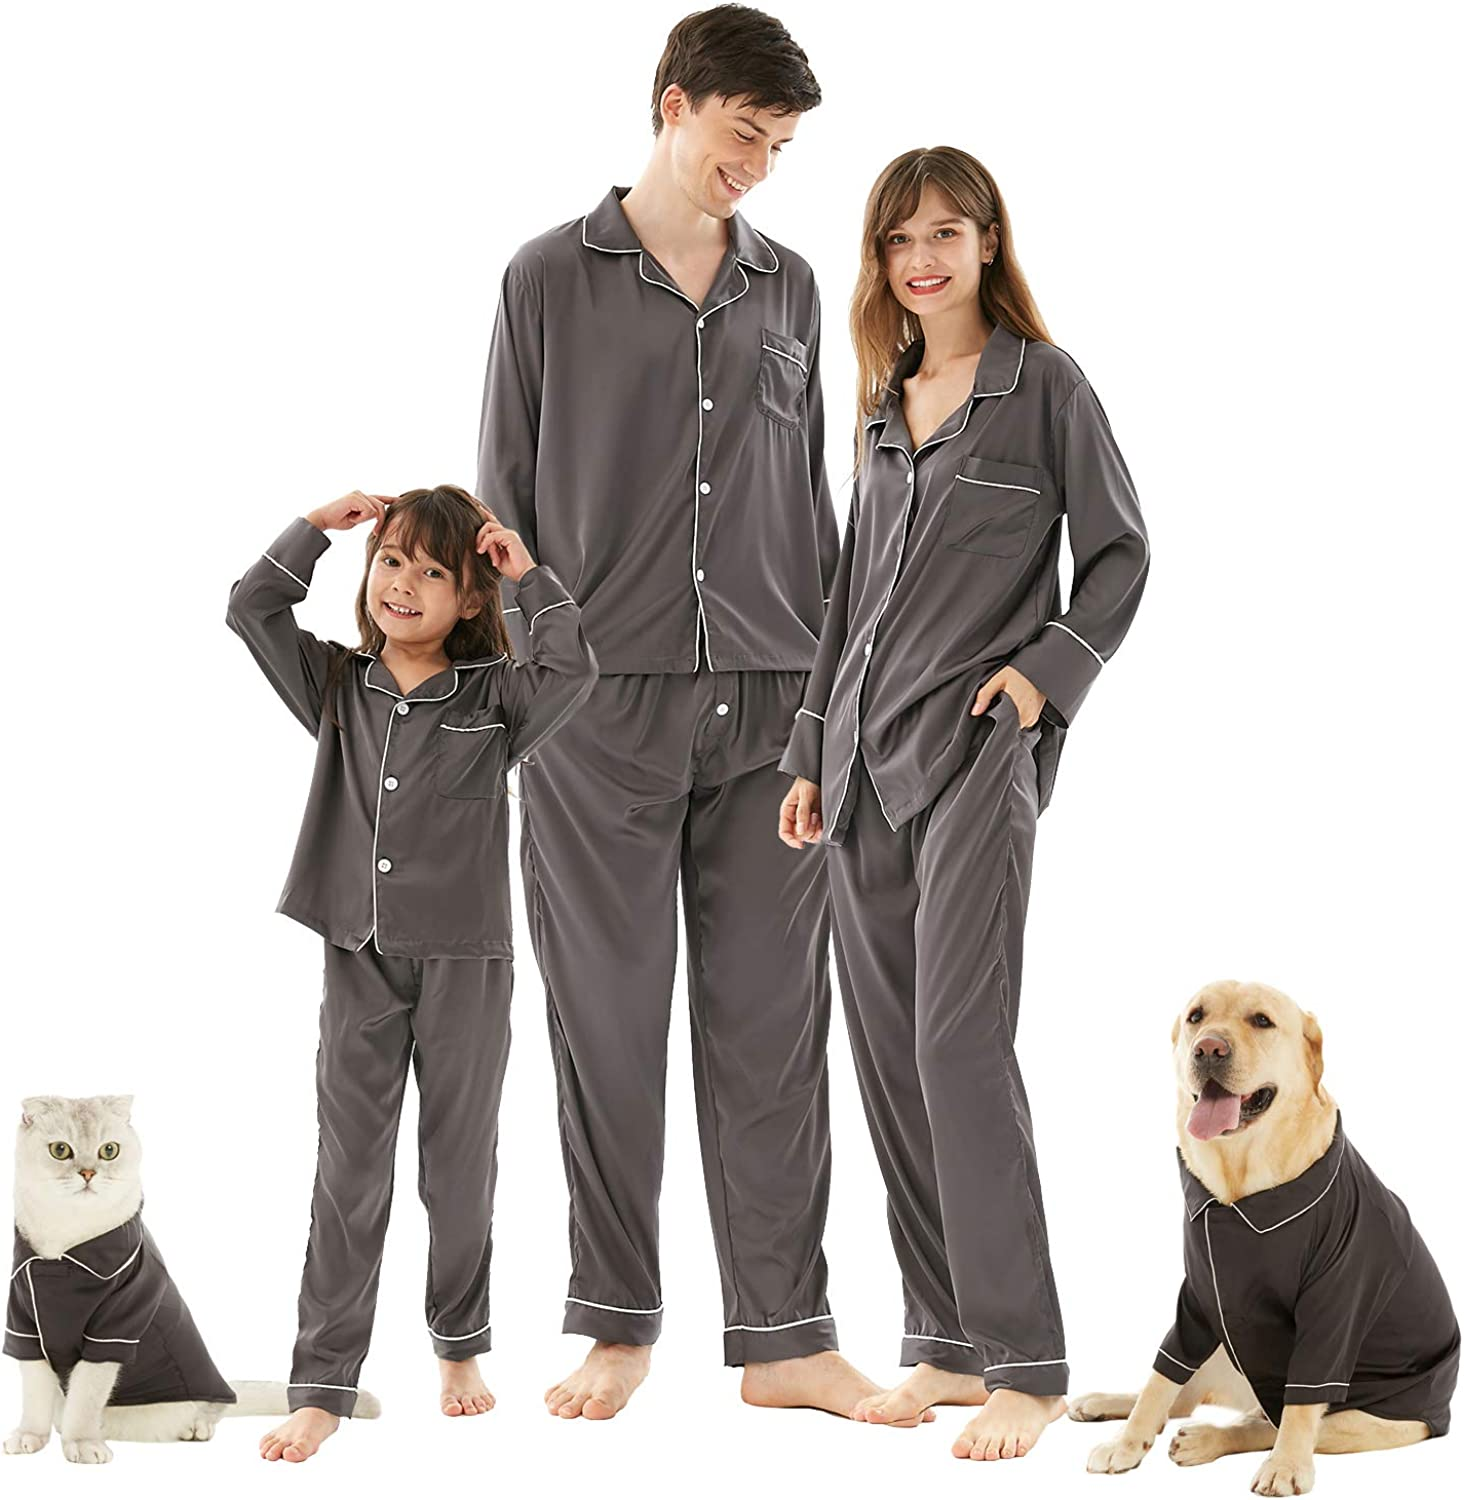 Mens Pajama Set, Silk Soft Satin Comfort Long Sleeves 2-Pieces Pajamas Set Sleepwear Pjs for Indoor Home Christmas for Family Matching Size M Gray